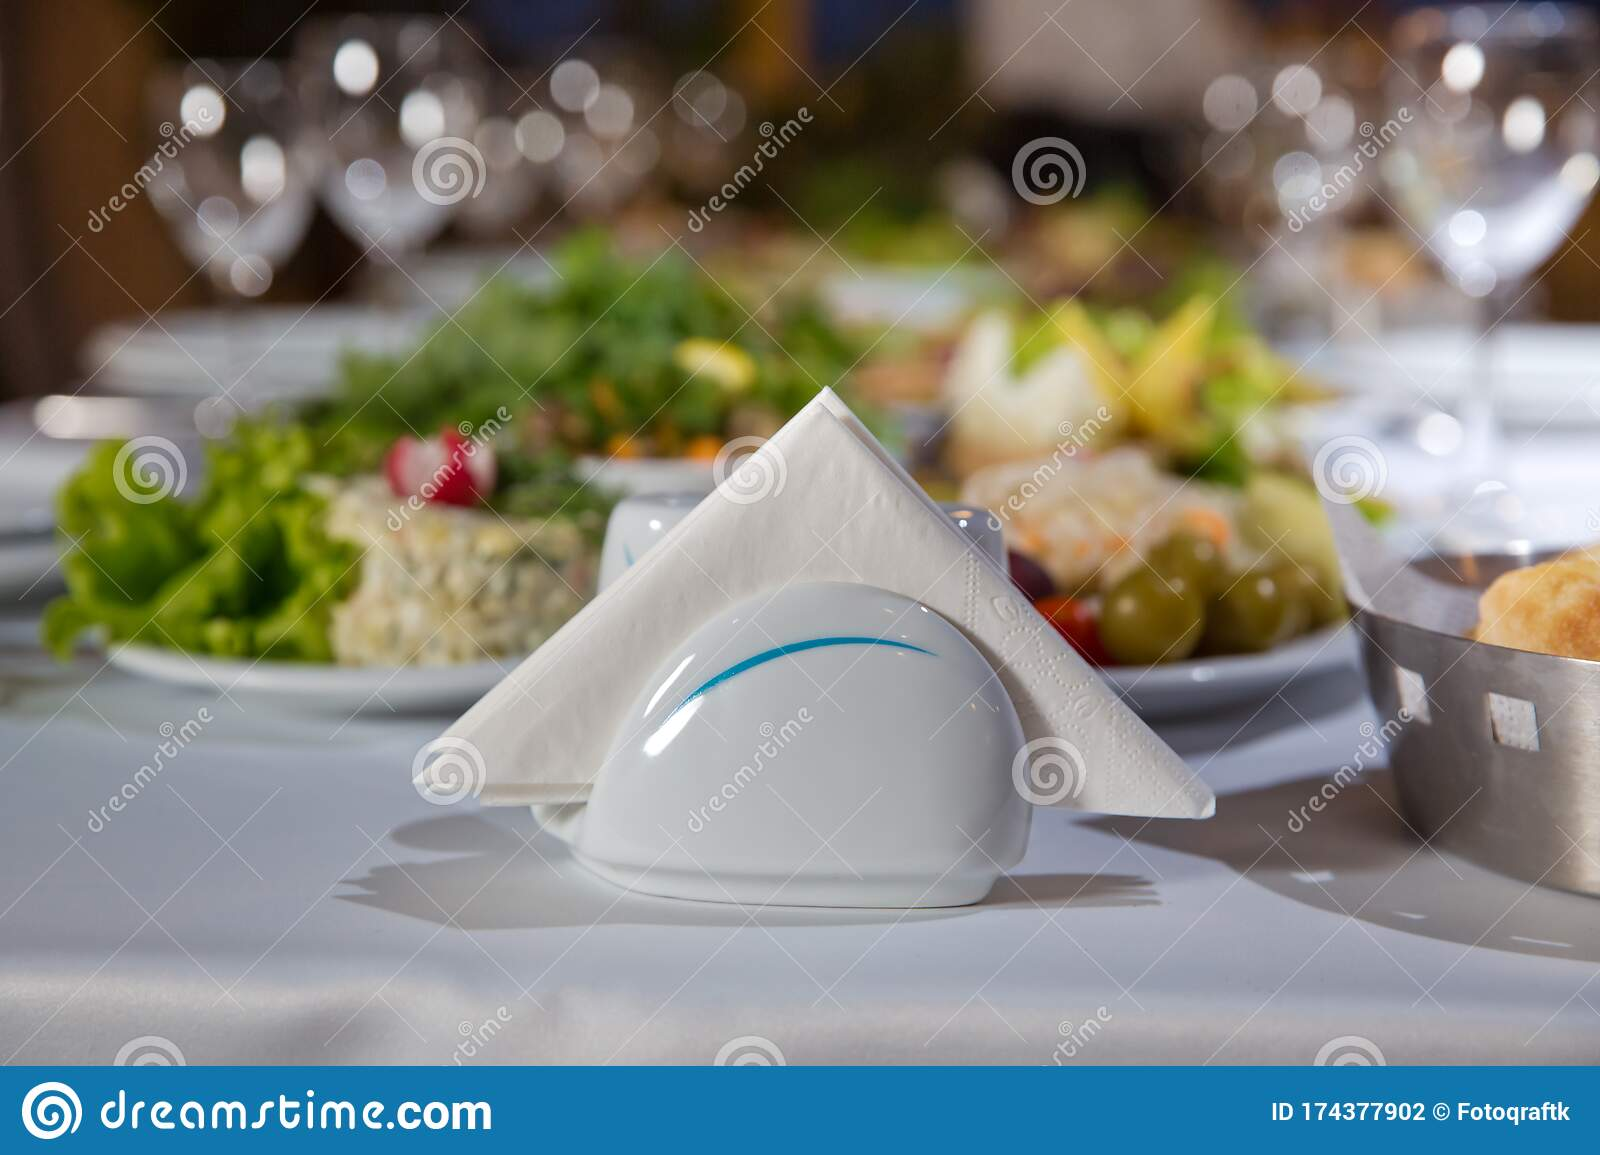 A Table In A Cafe Or Restaurant White Napkins In A Metal Napkin Holder Spices Salt And Pepper On A Woodeglass Table Panoramic Stock Photo Image Of Cloth Banquet 174377902